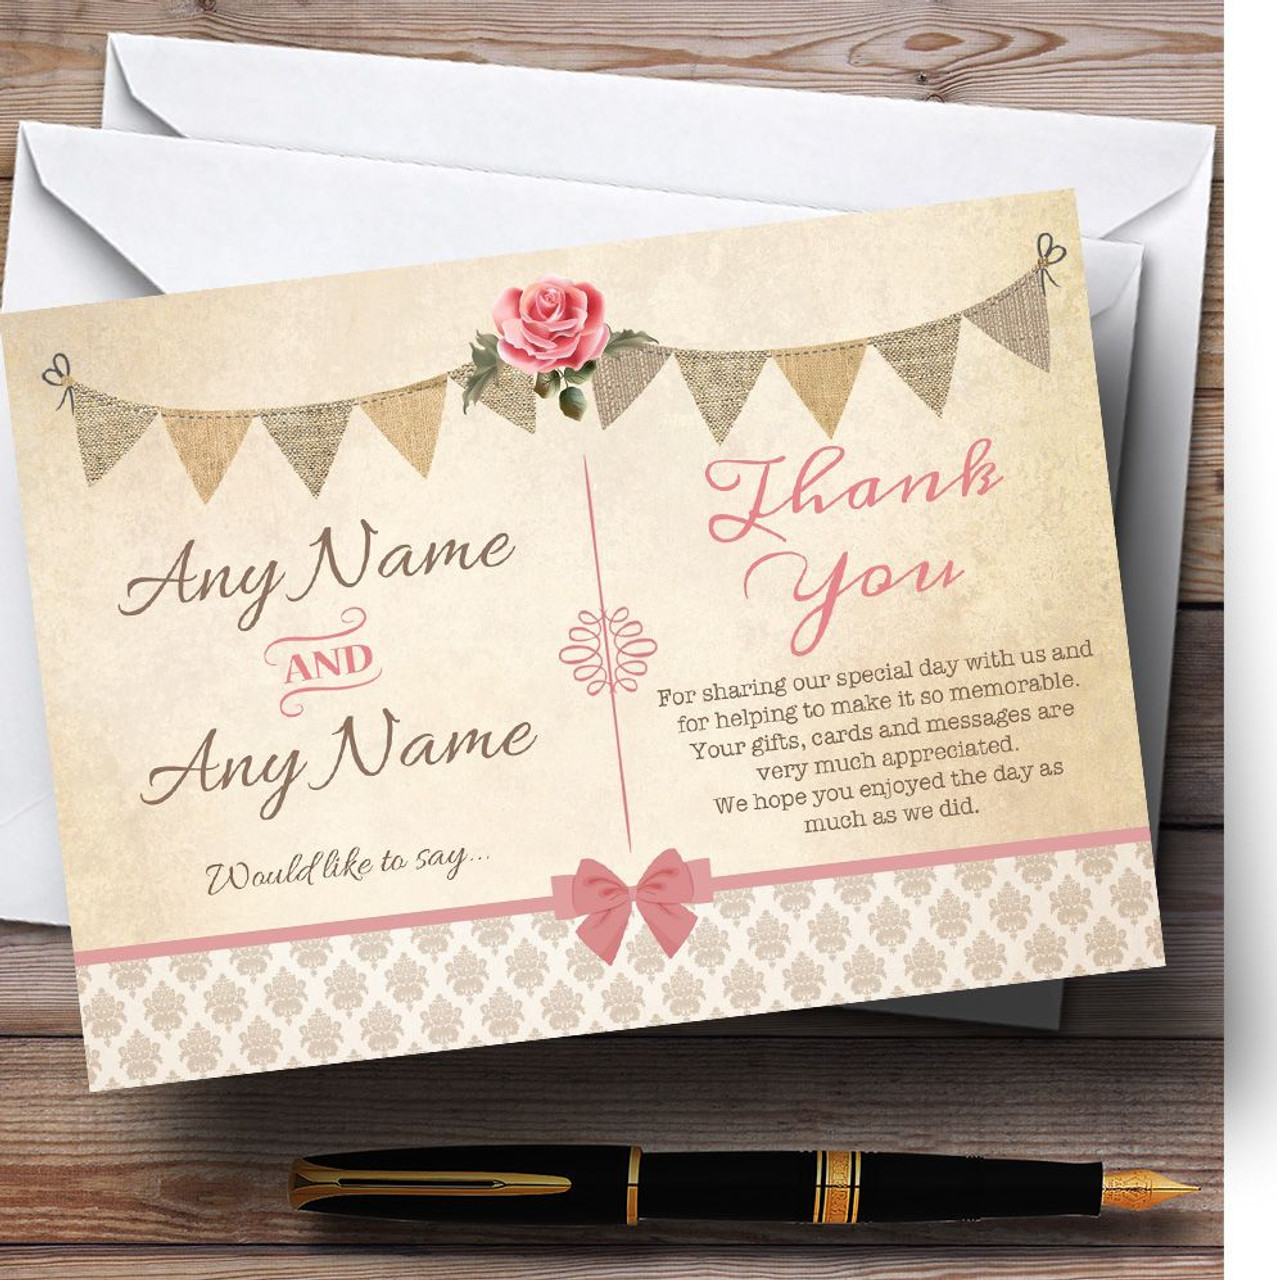 Vintage Rustic Style Bunting Pink Rose Personalized Wedding Thank You Cards  - Red Heart Print